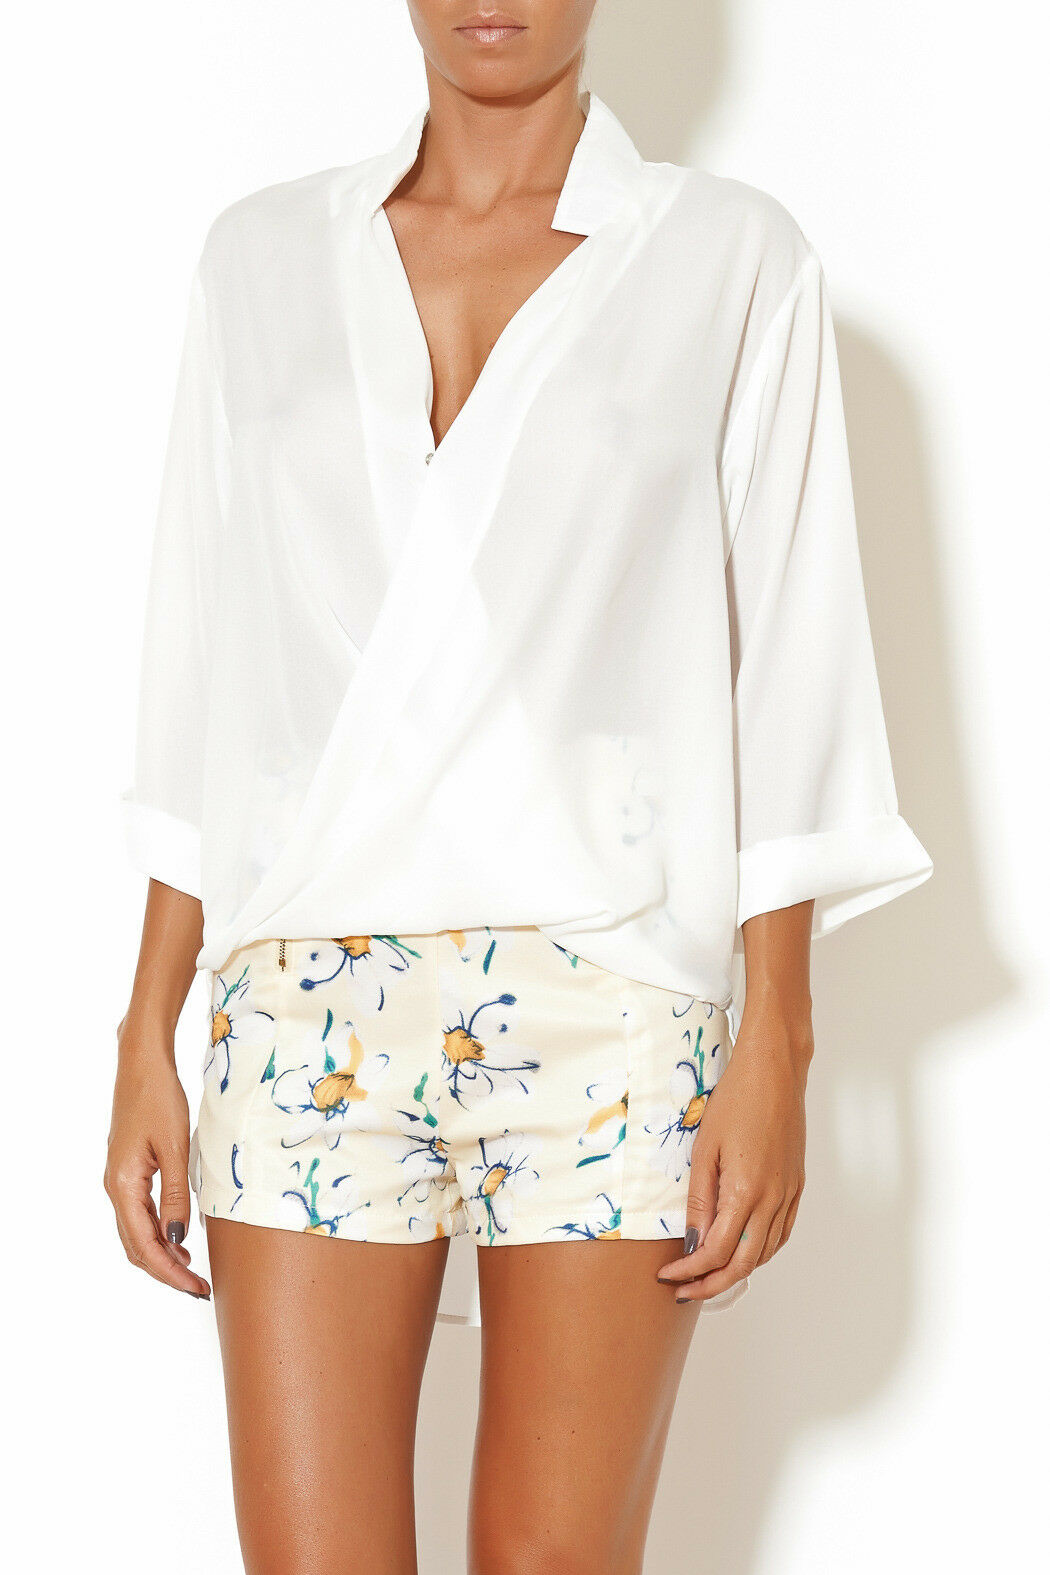 MADISON SQUARE Brand White Plunge Front High Low Blouse Size S BNWT  TL68